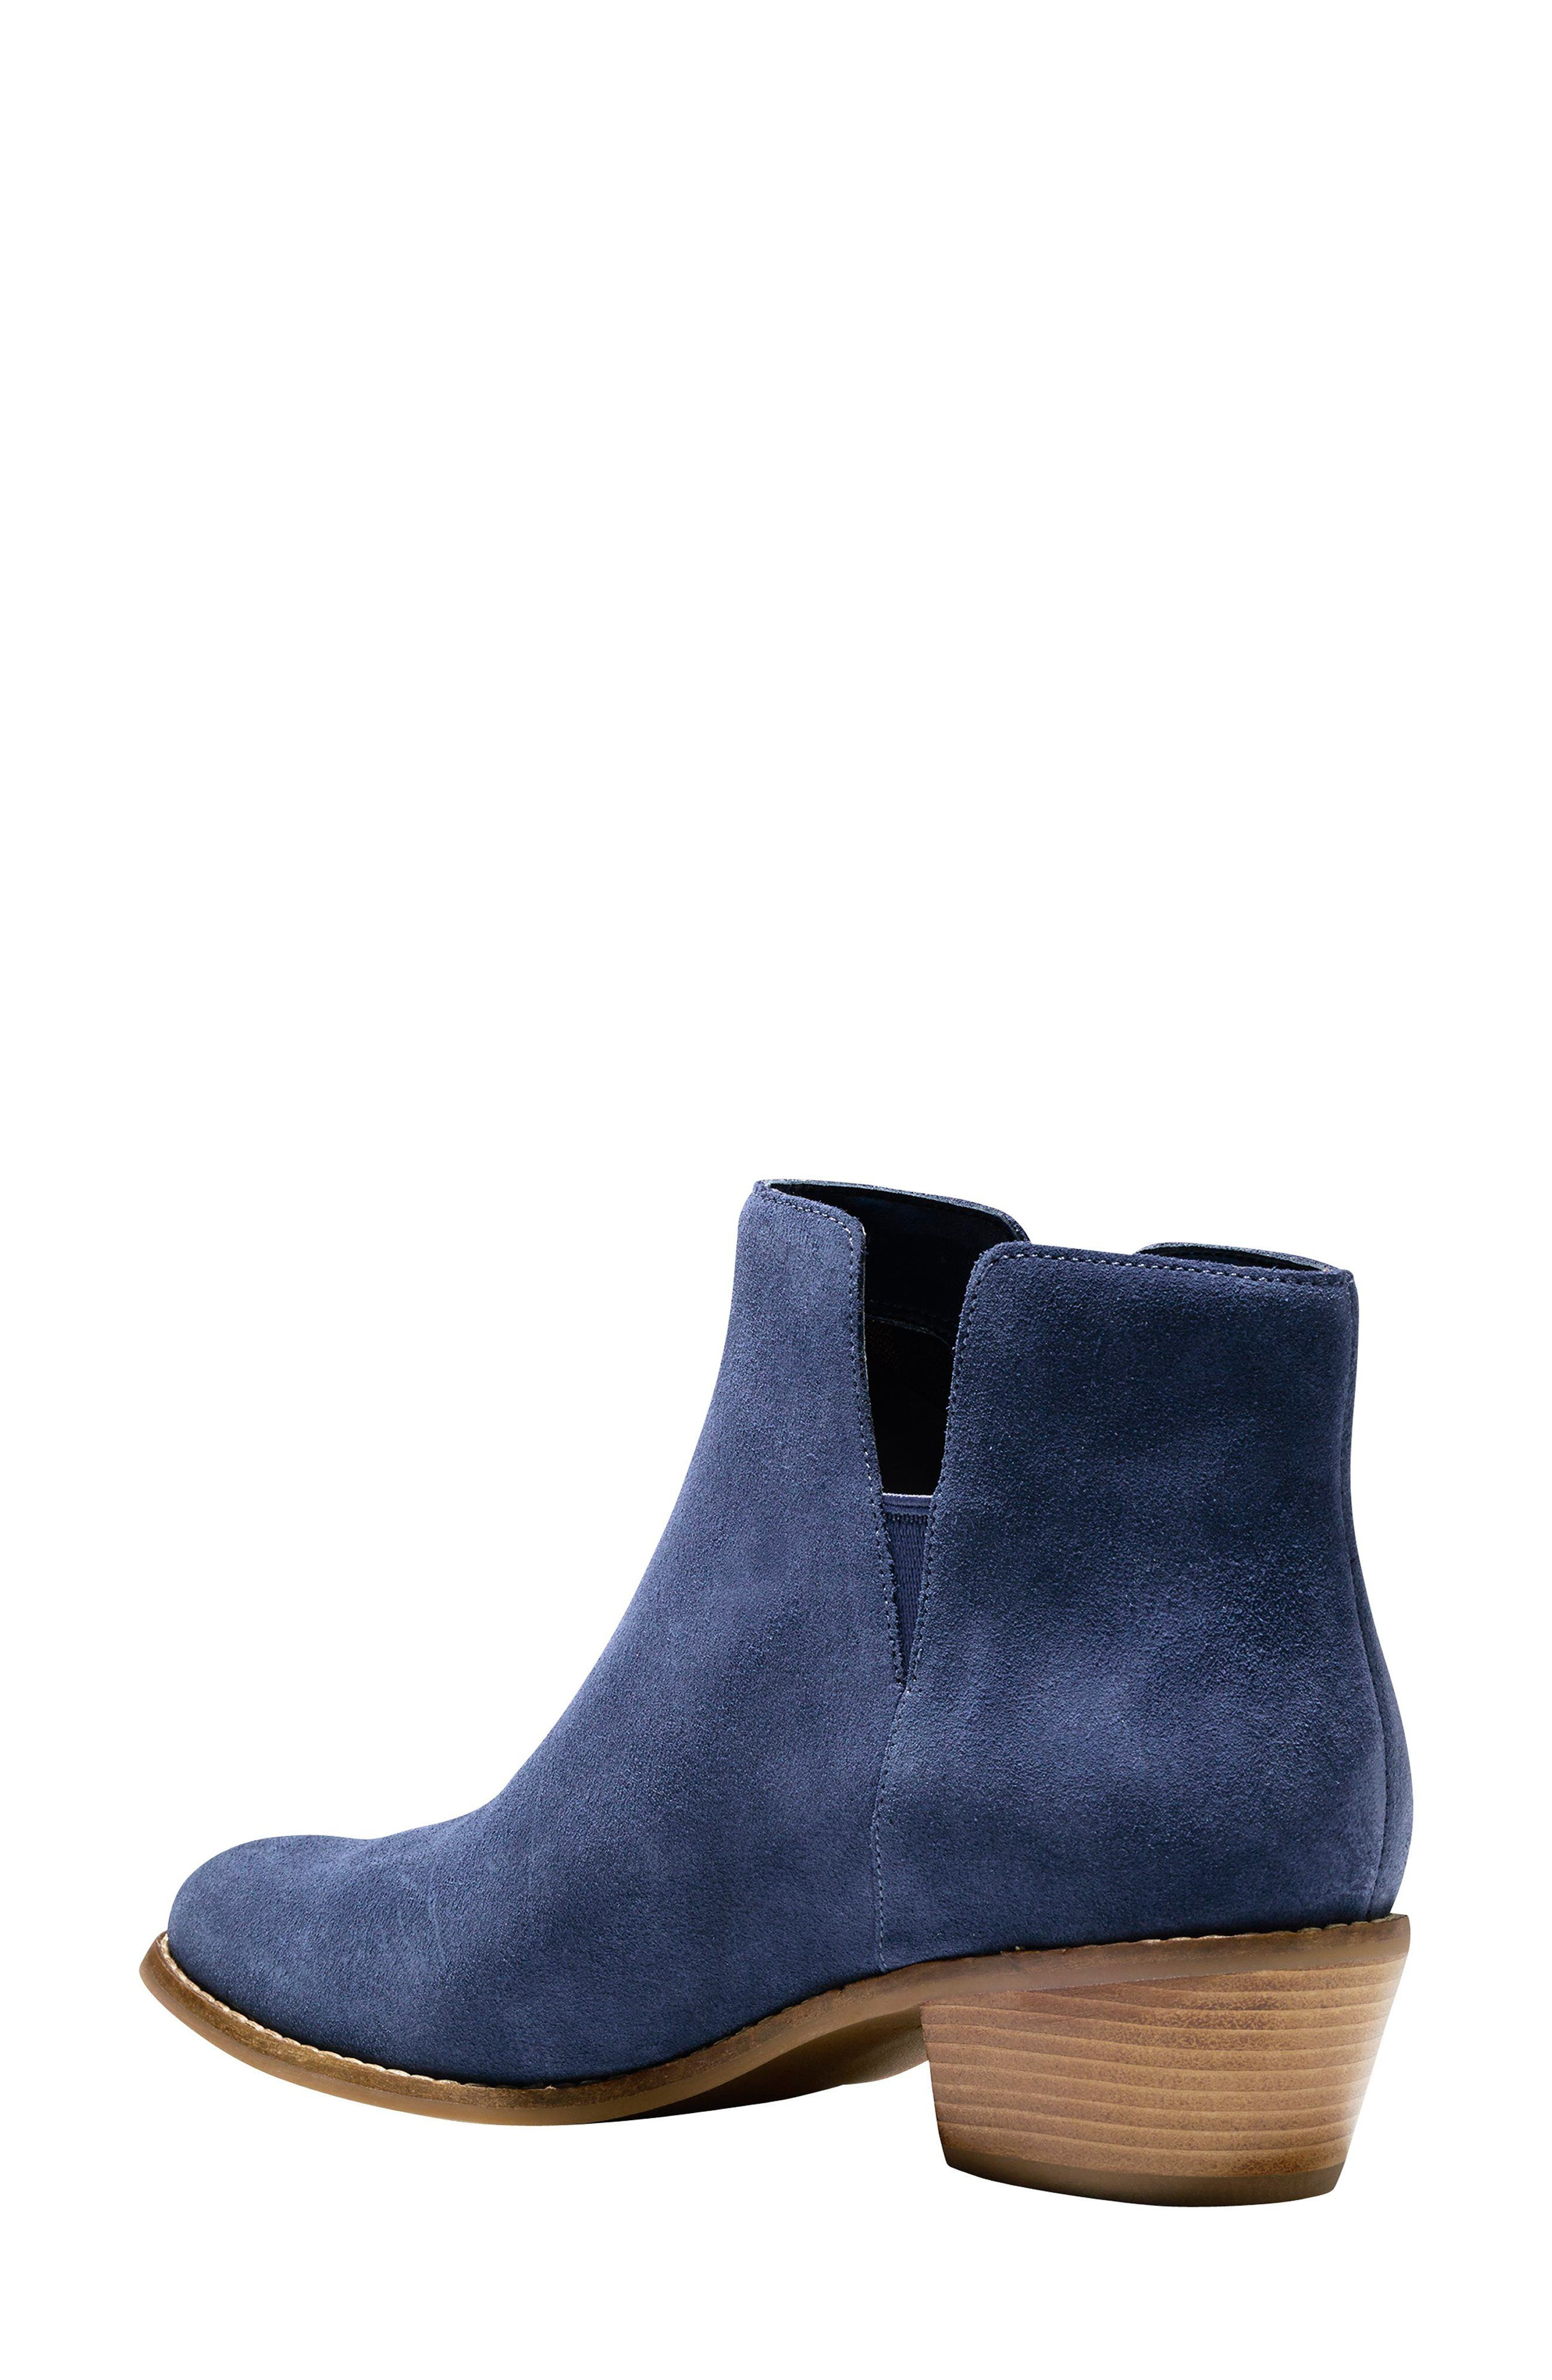 'Abbot' Chelsea Boot,                             Alternate thumbnail 10, color,